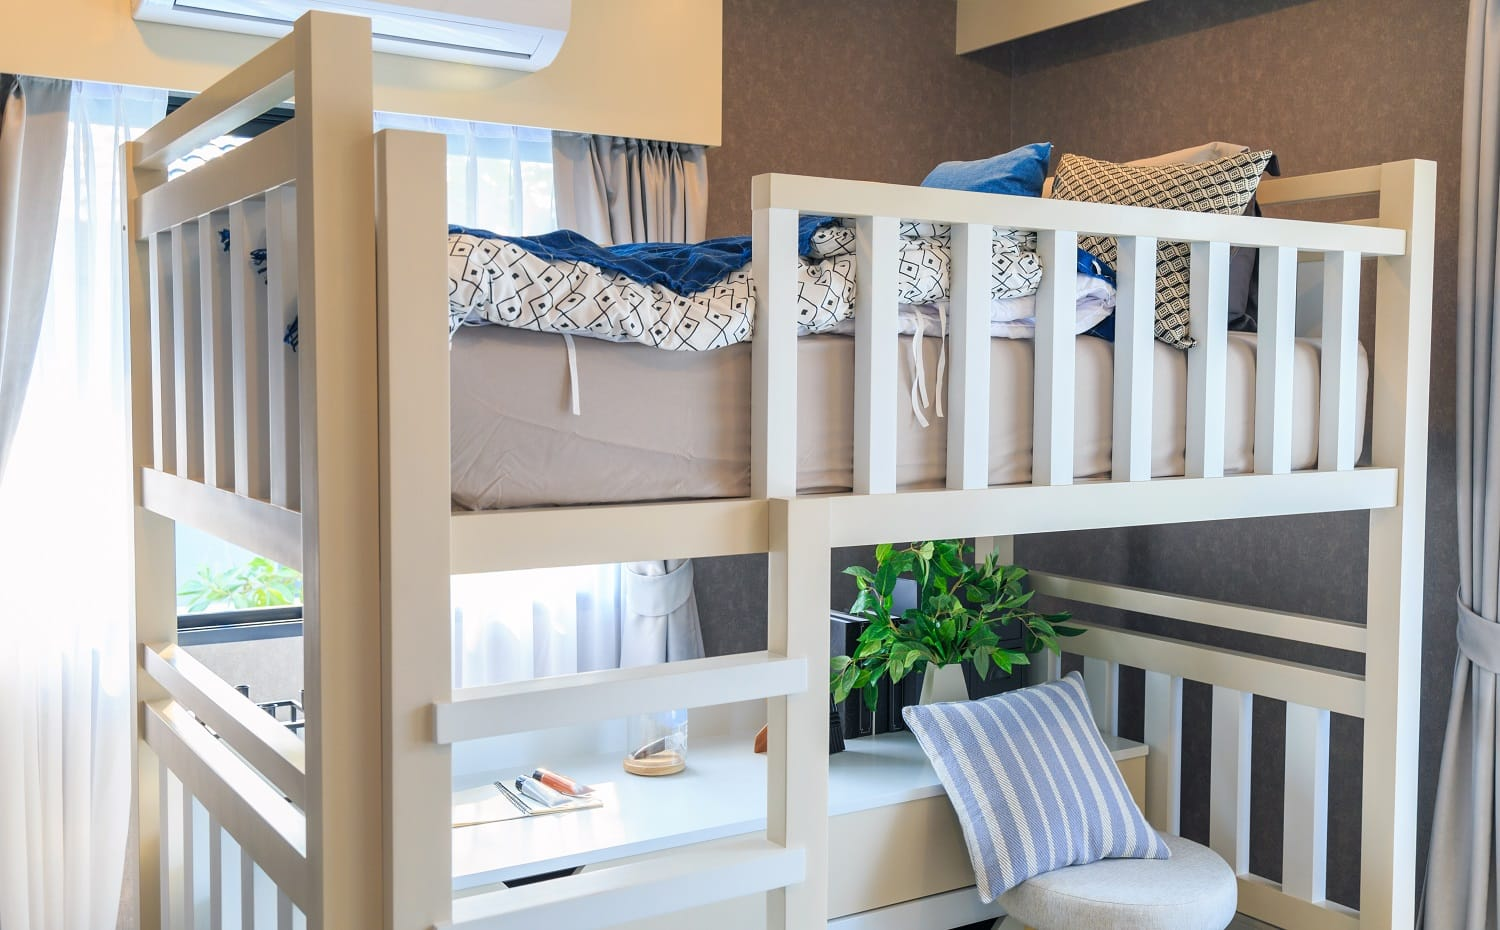 A white wooden bunk bed with a pillow and air conditioner in a children's bedroom with warm light from a window.